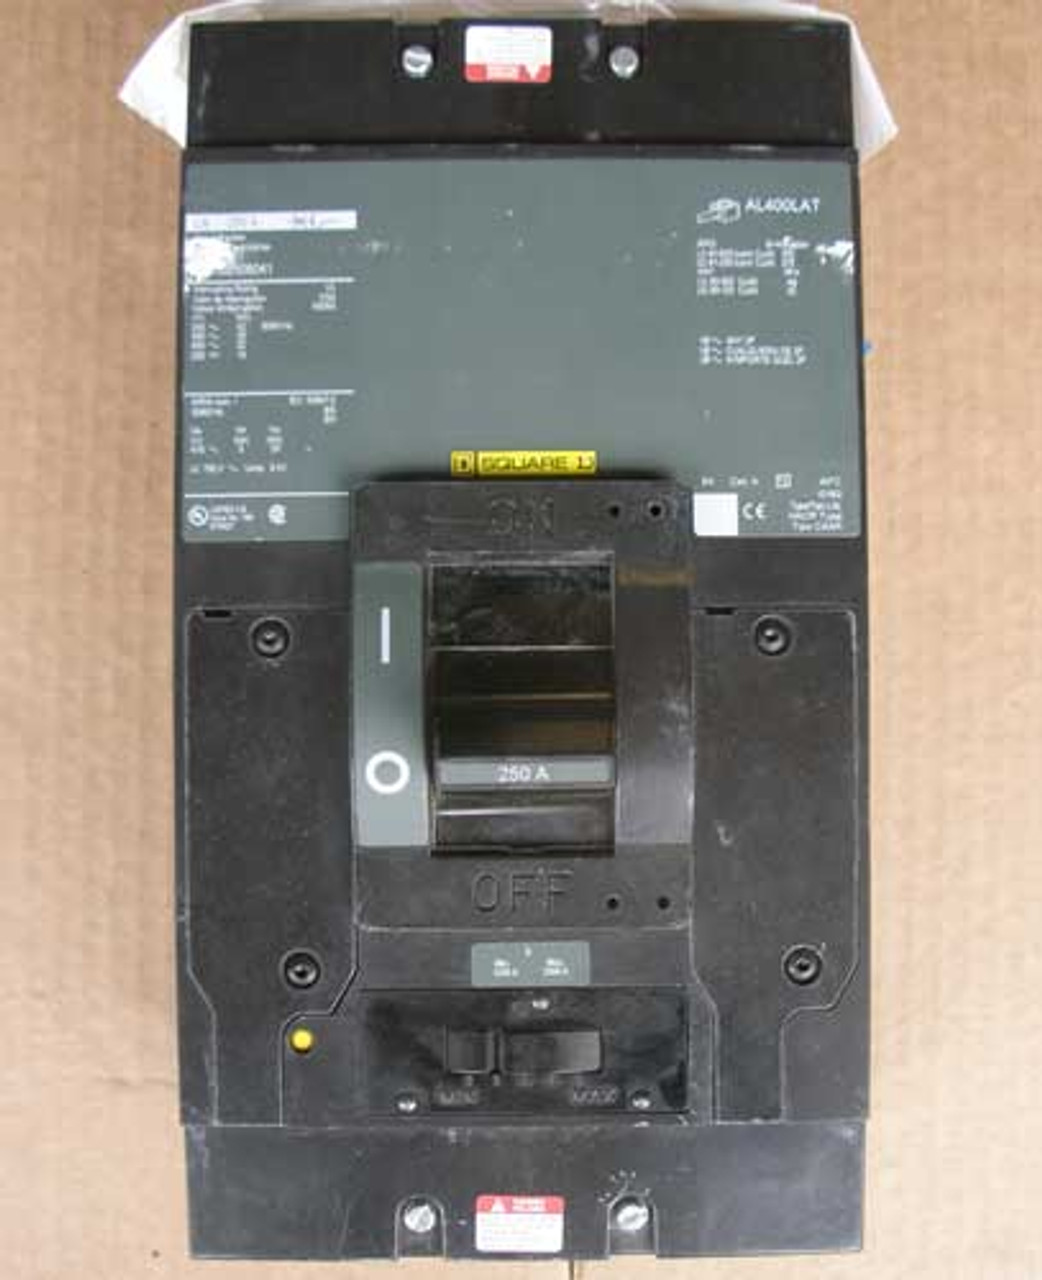 Square D LAL36250MB 3 Pole 250 Amp 600 VAC MB Style Circuit Breaker - Used